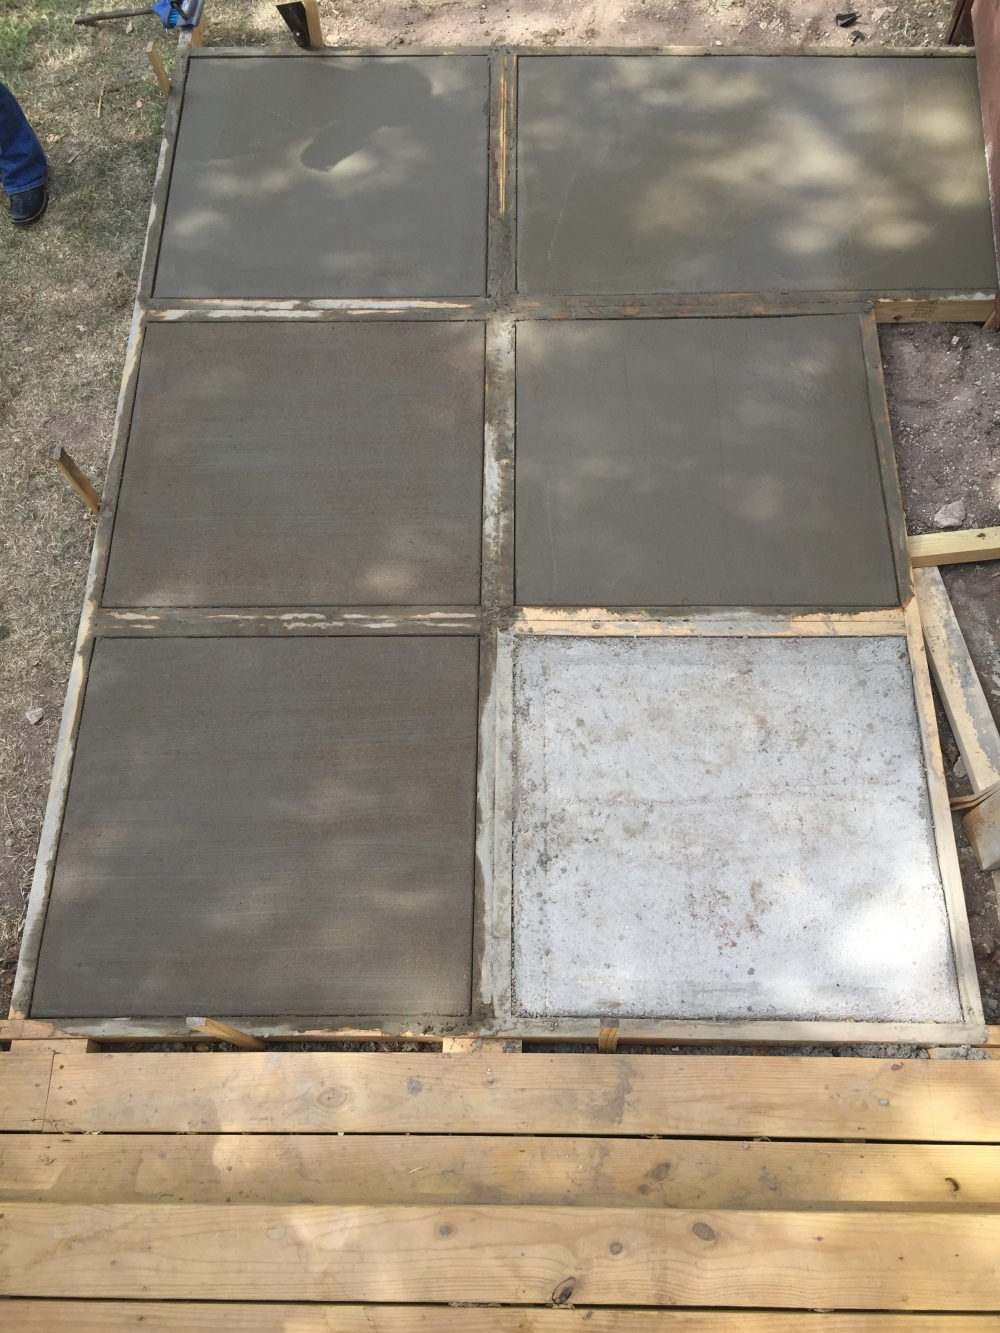 Waiting for our New Concrete Pavers to Dry